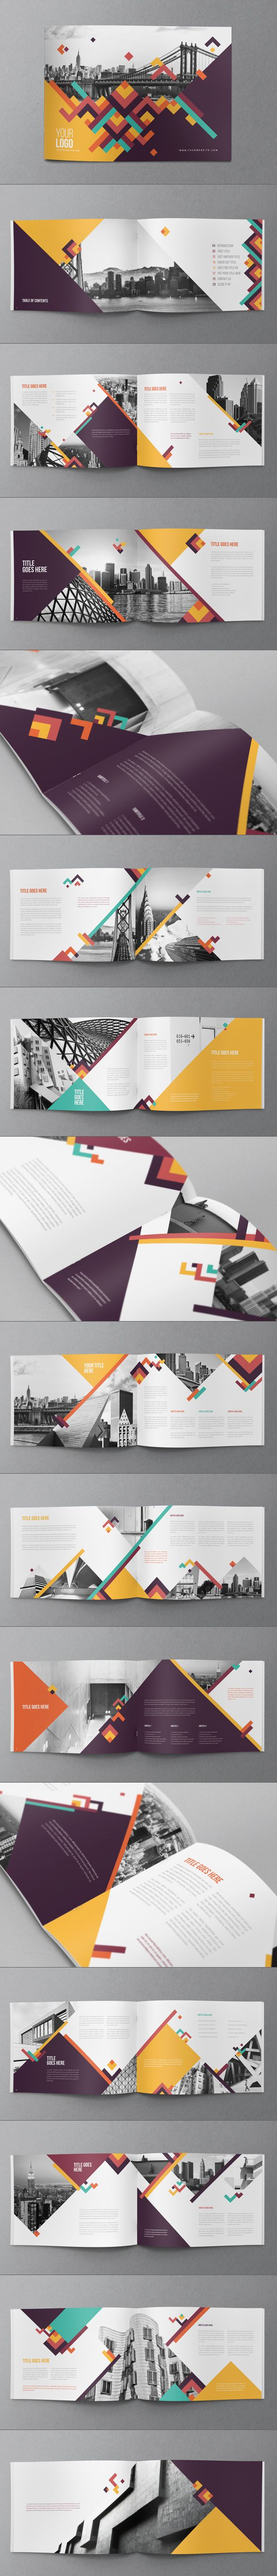 Colorful Pattern Brochure by Abra Design, via Behance